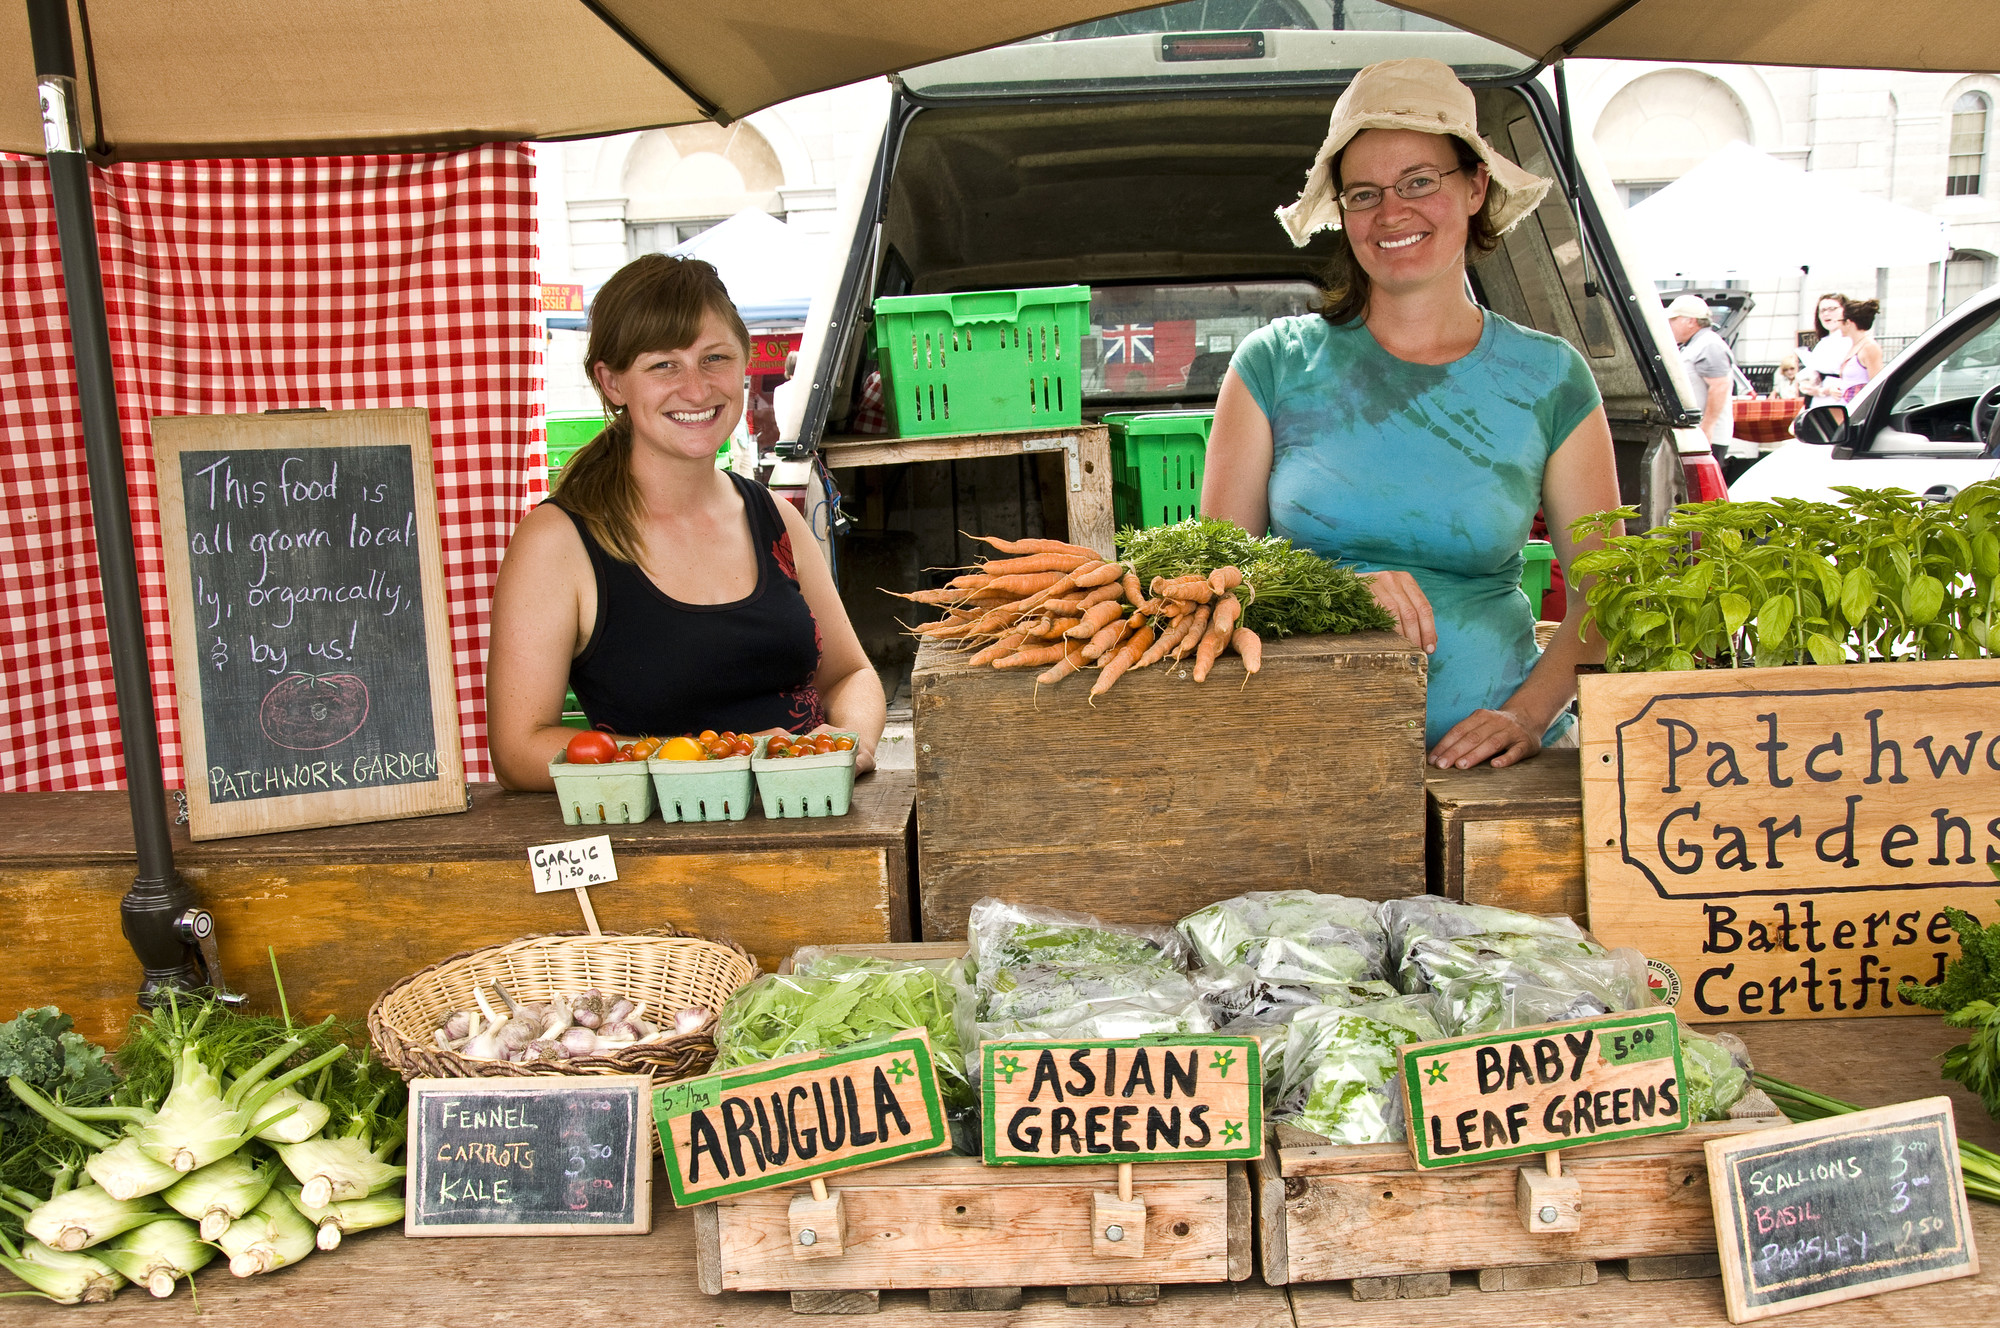 Take your pick of farm fresh, local food at the Kingston Public Market. (The Great Waterway)